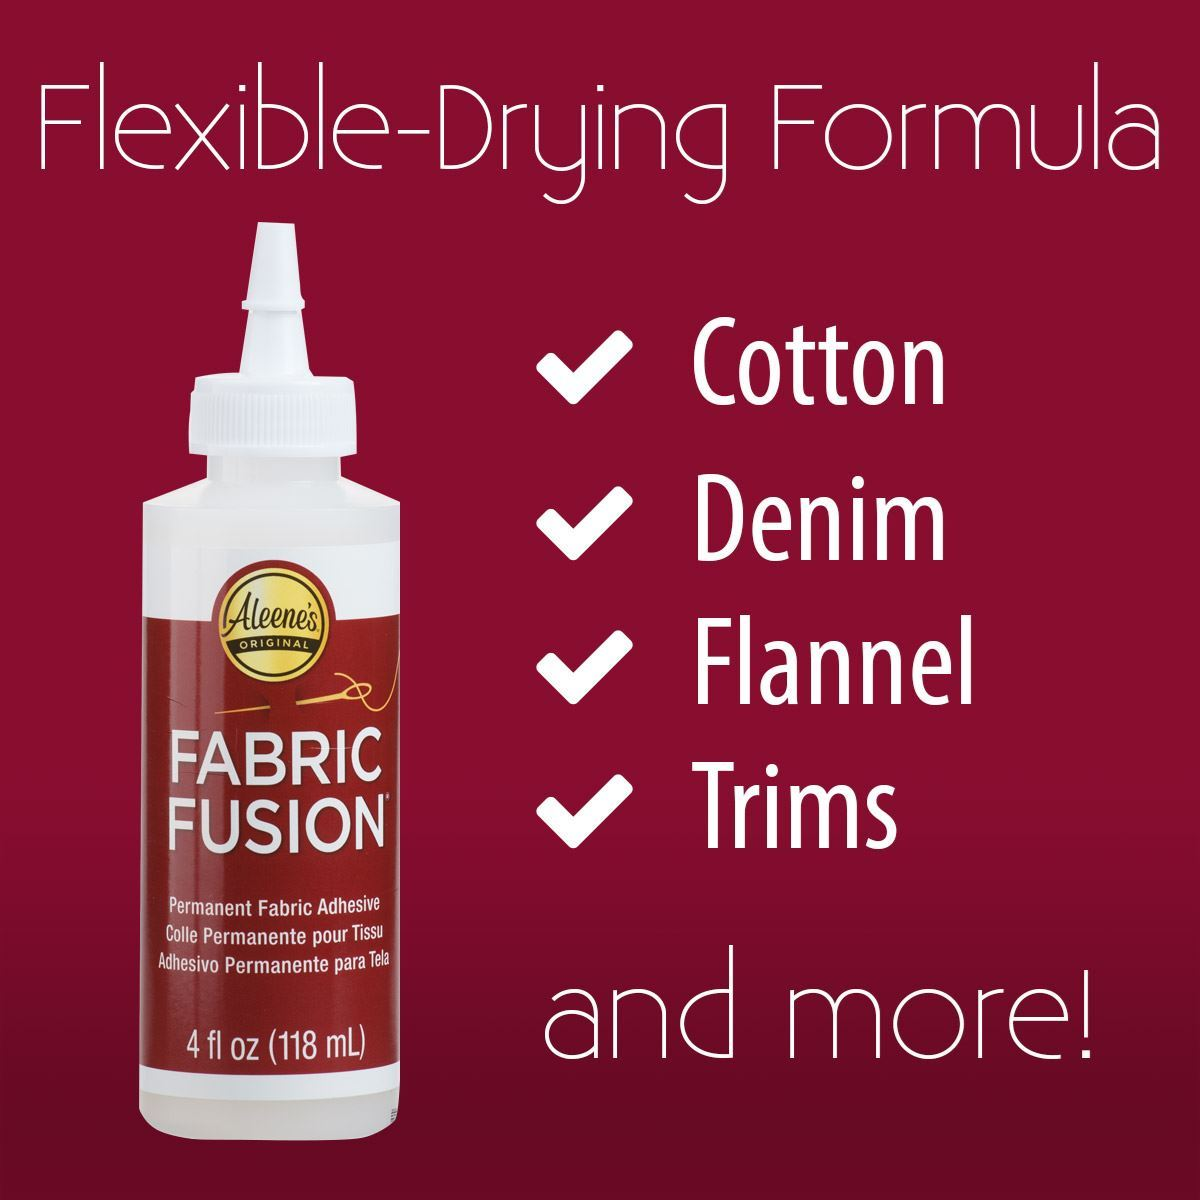 Fabric Fusion - Permanent Fabric Adhesive Surfaces Guide